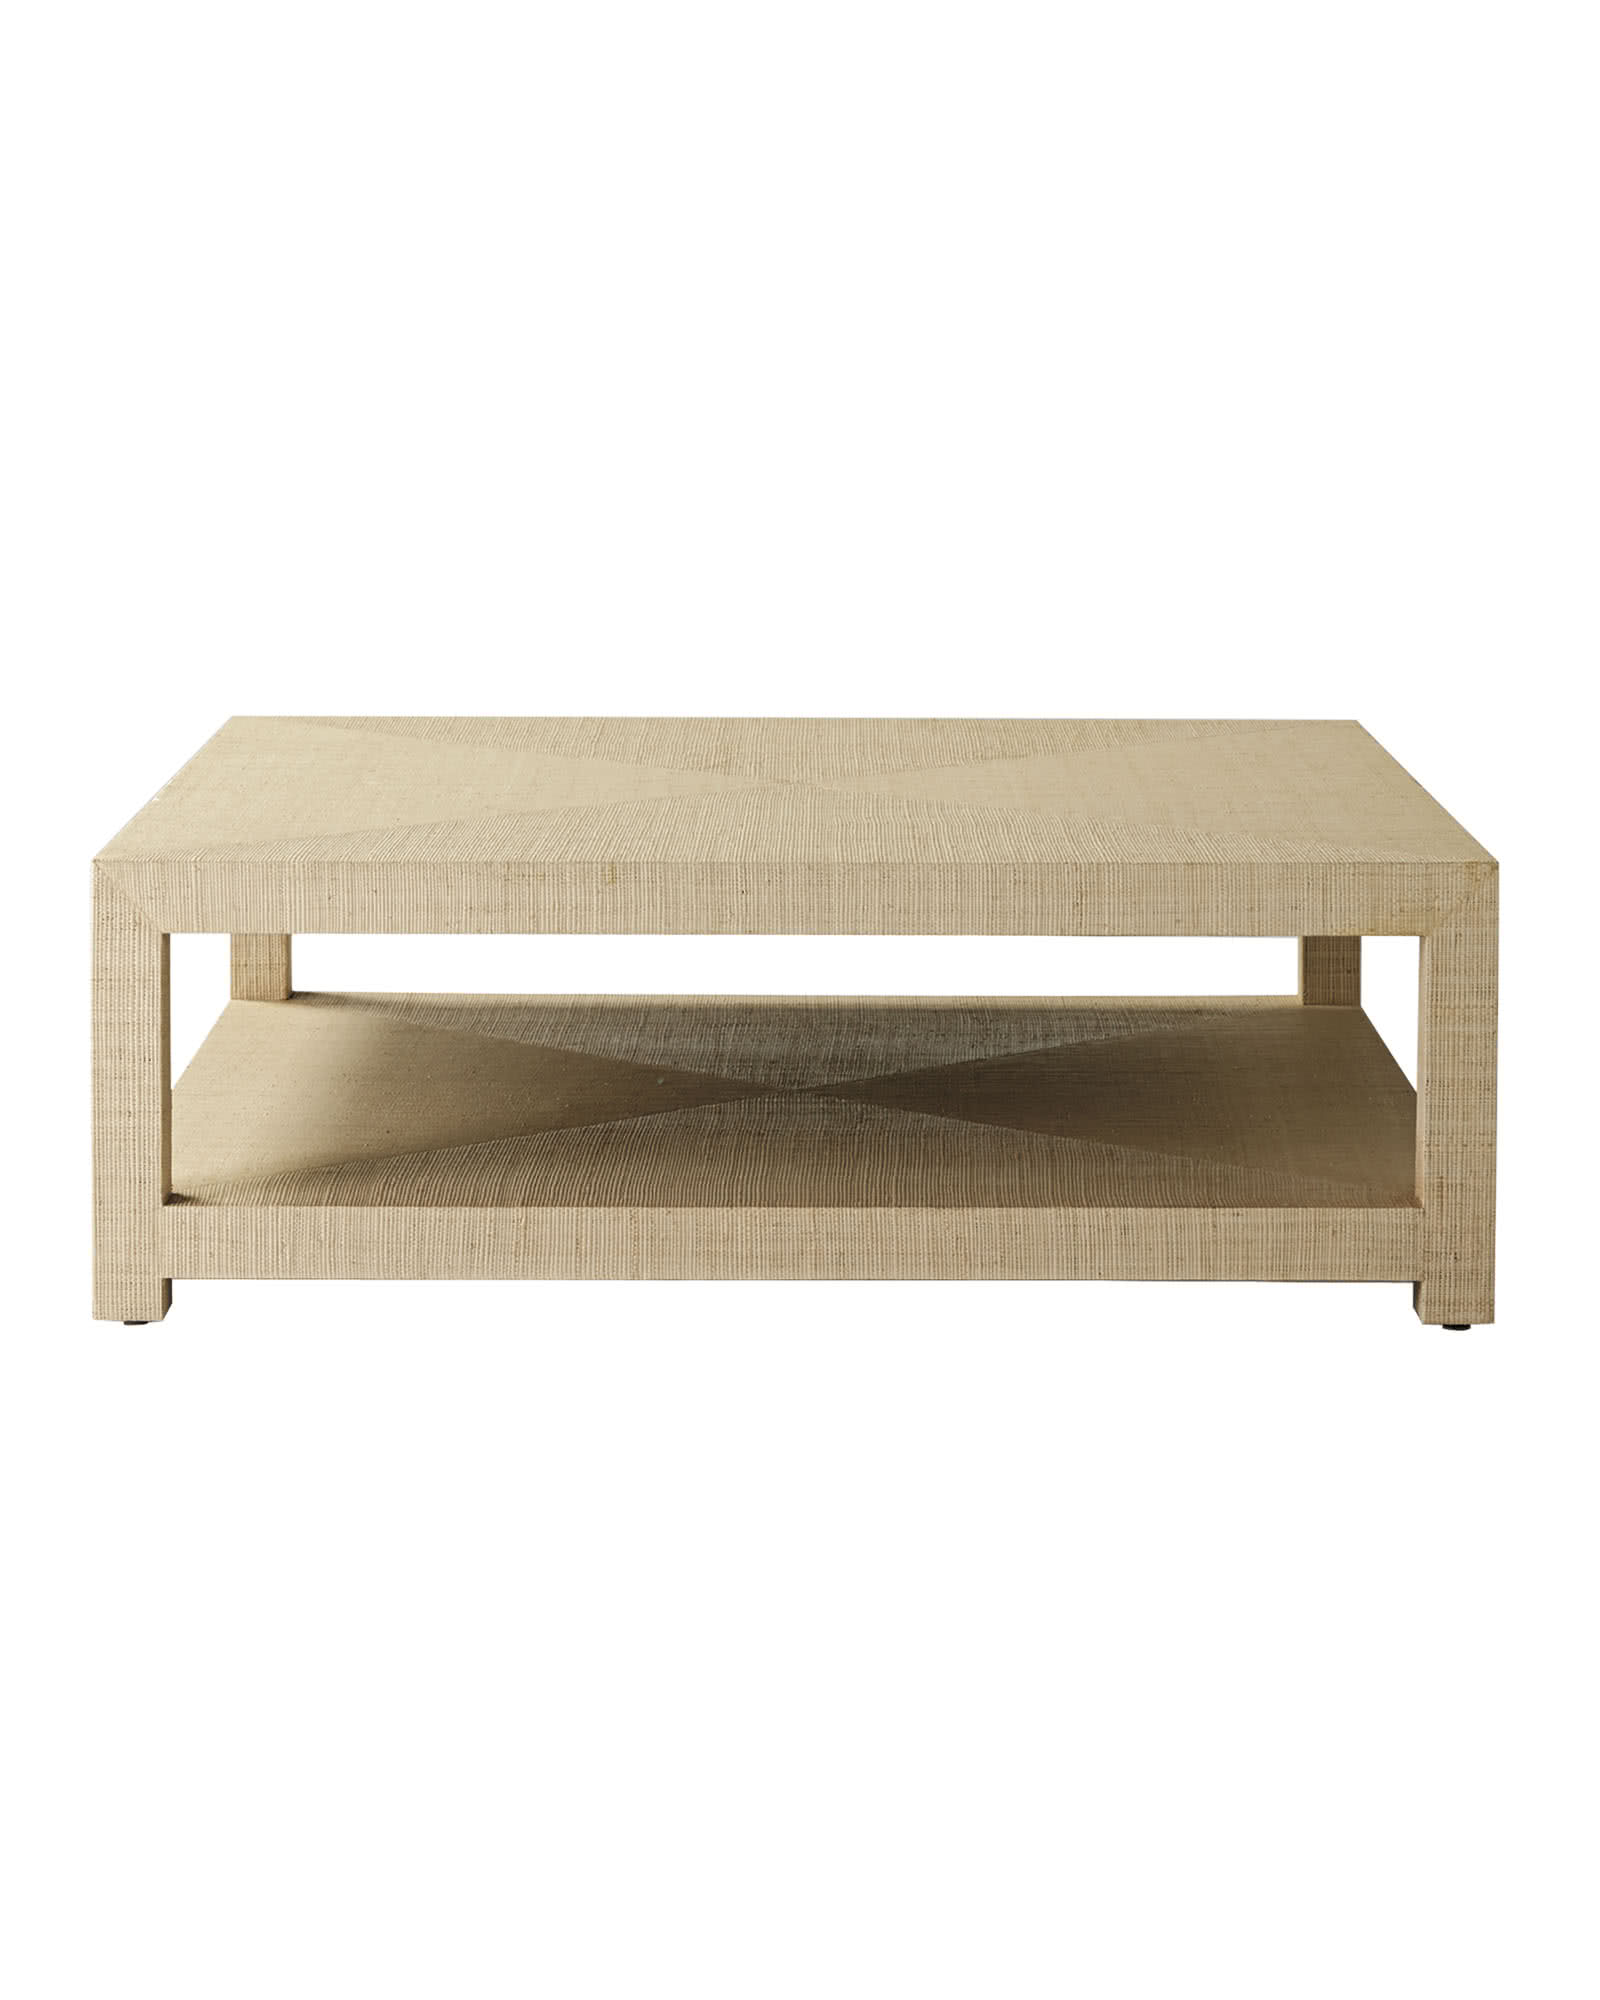 Blake Raffia Square Coffee Table. Blake Raffia Square Coffee Table   Serena   Lily